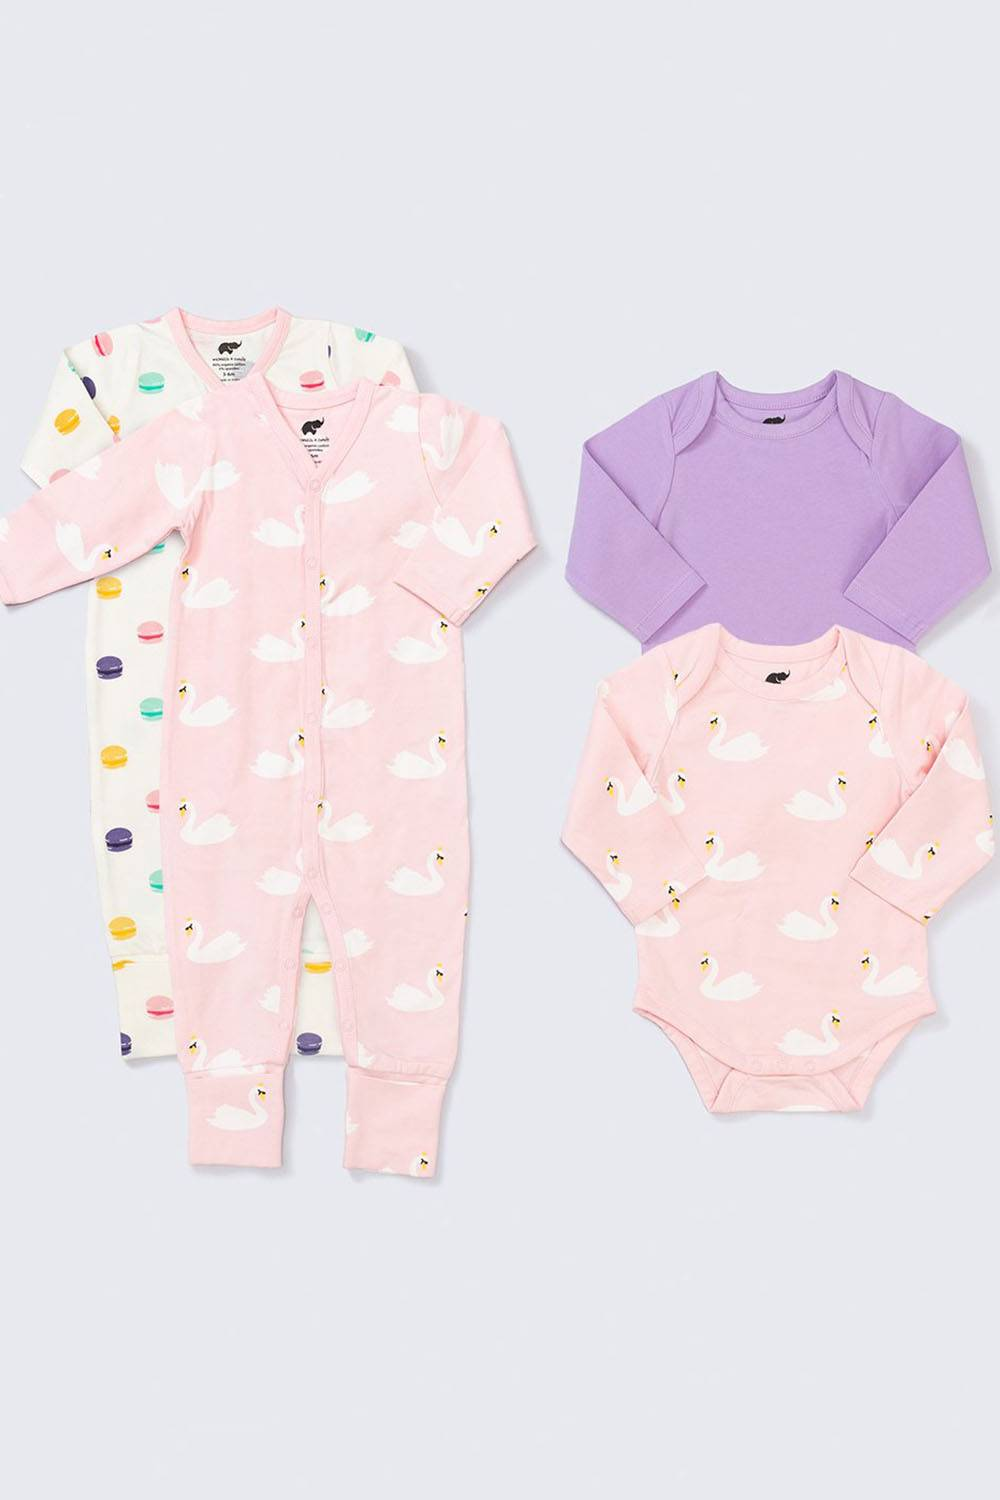 monica and andy baby clothes not made in china